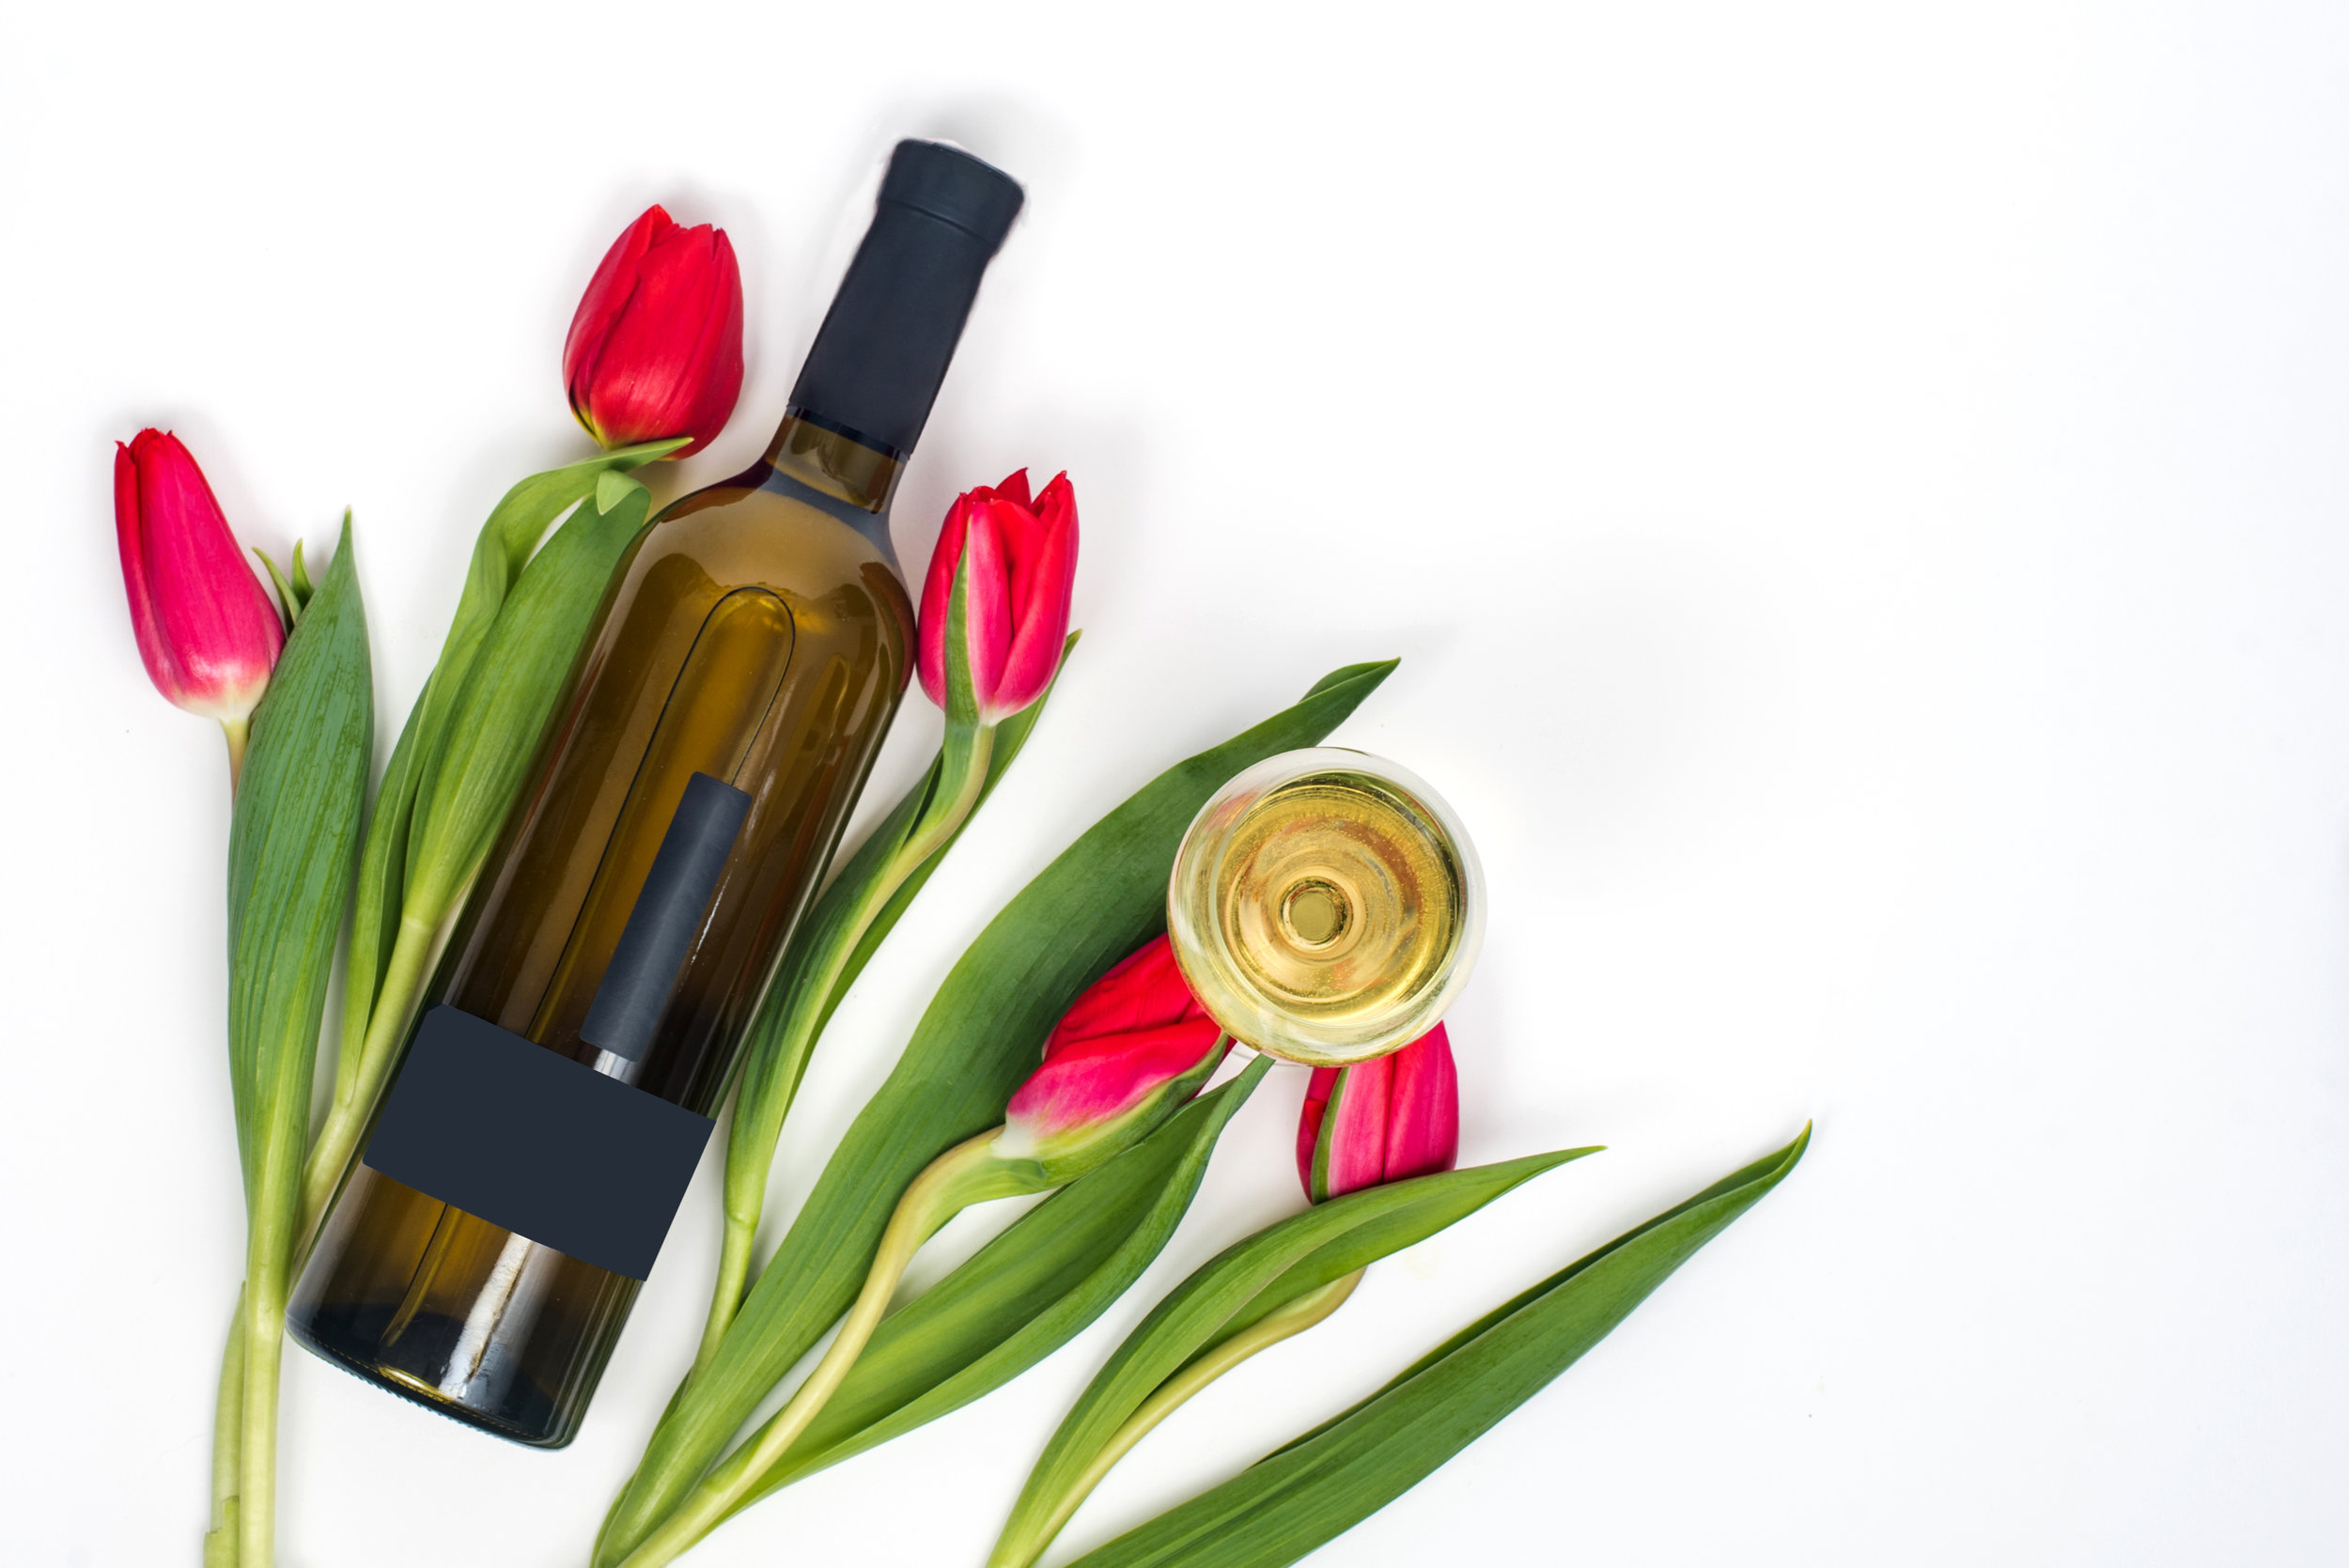 (2.21) Wine bottle surrounded by flowers.jpg